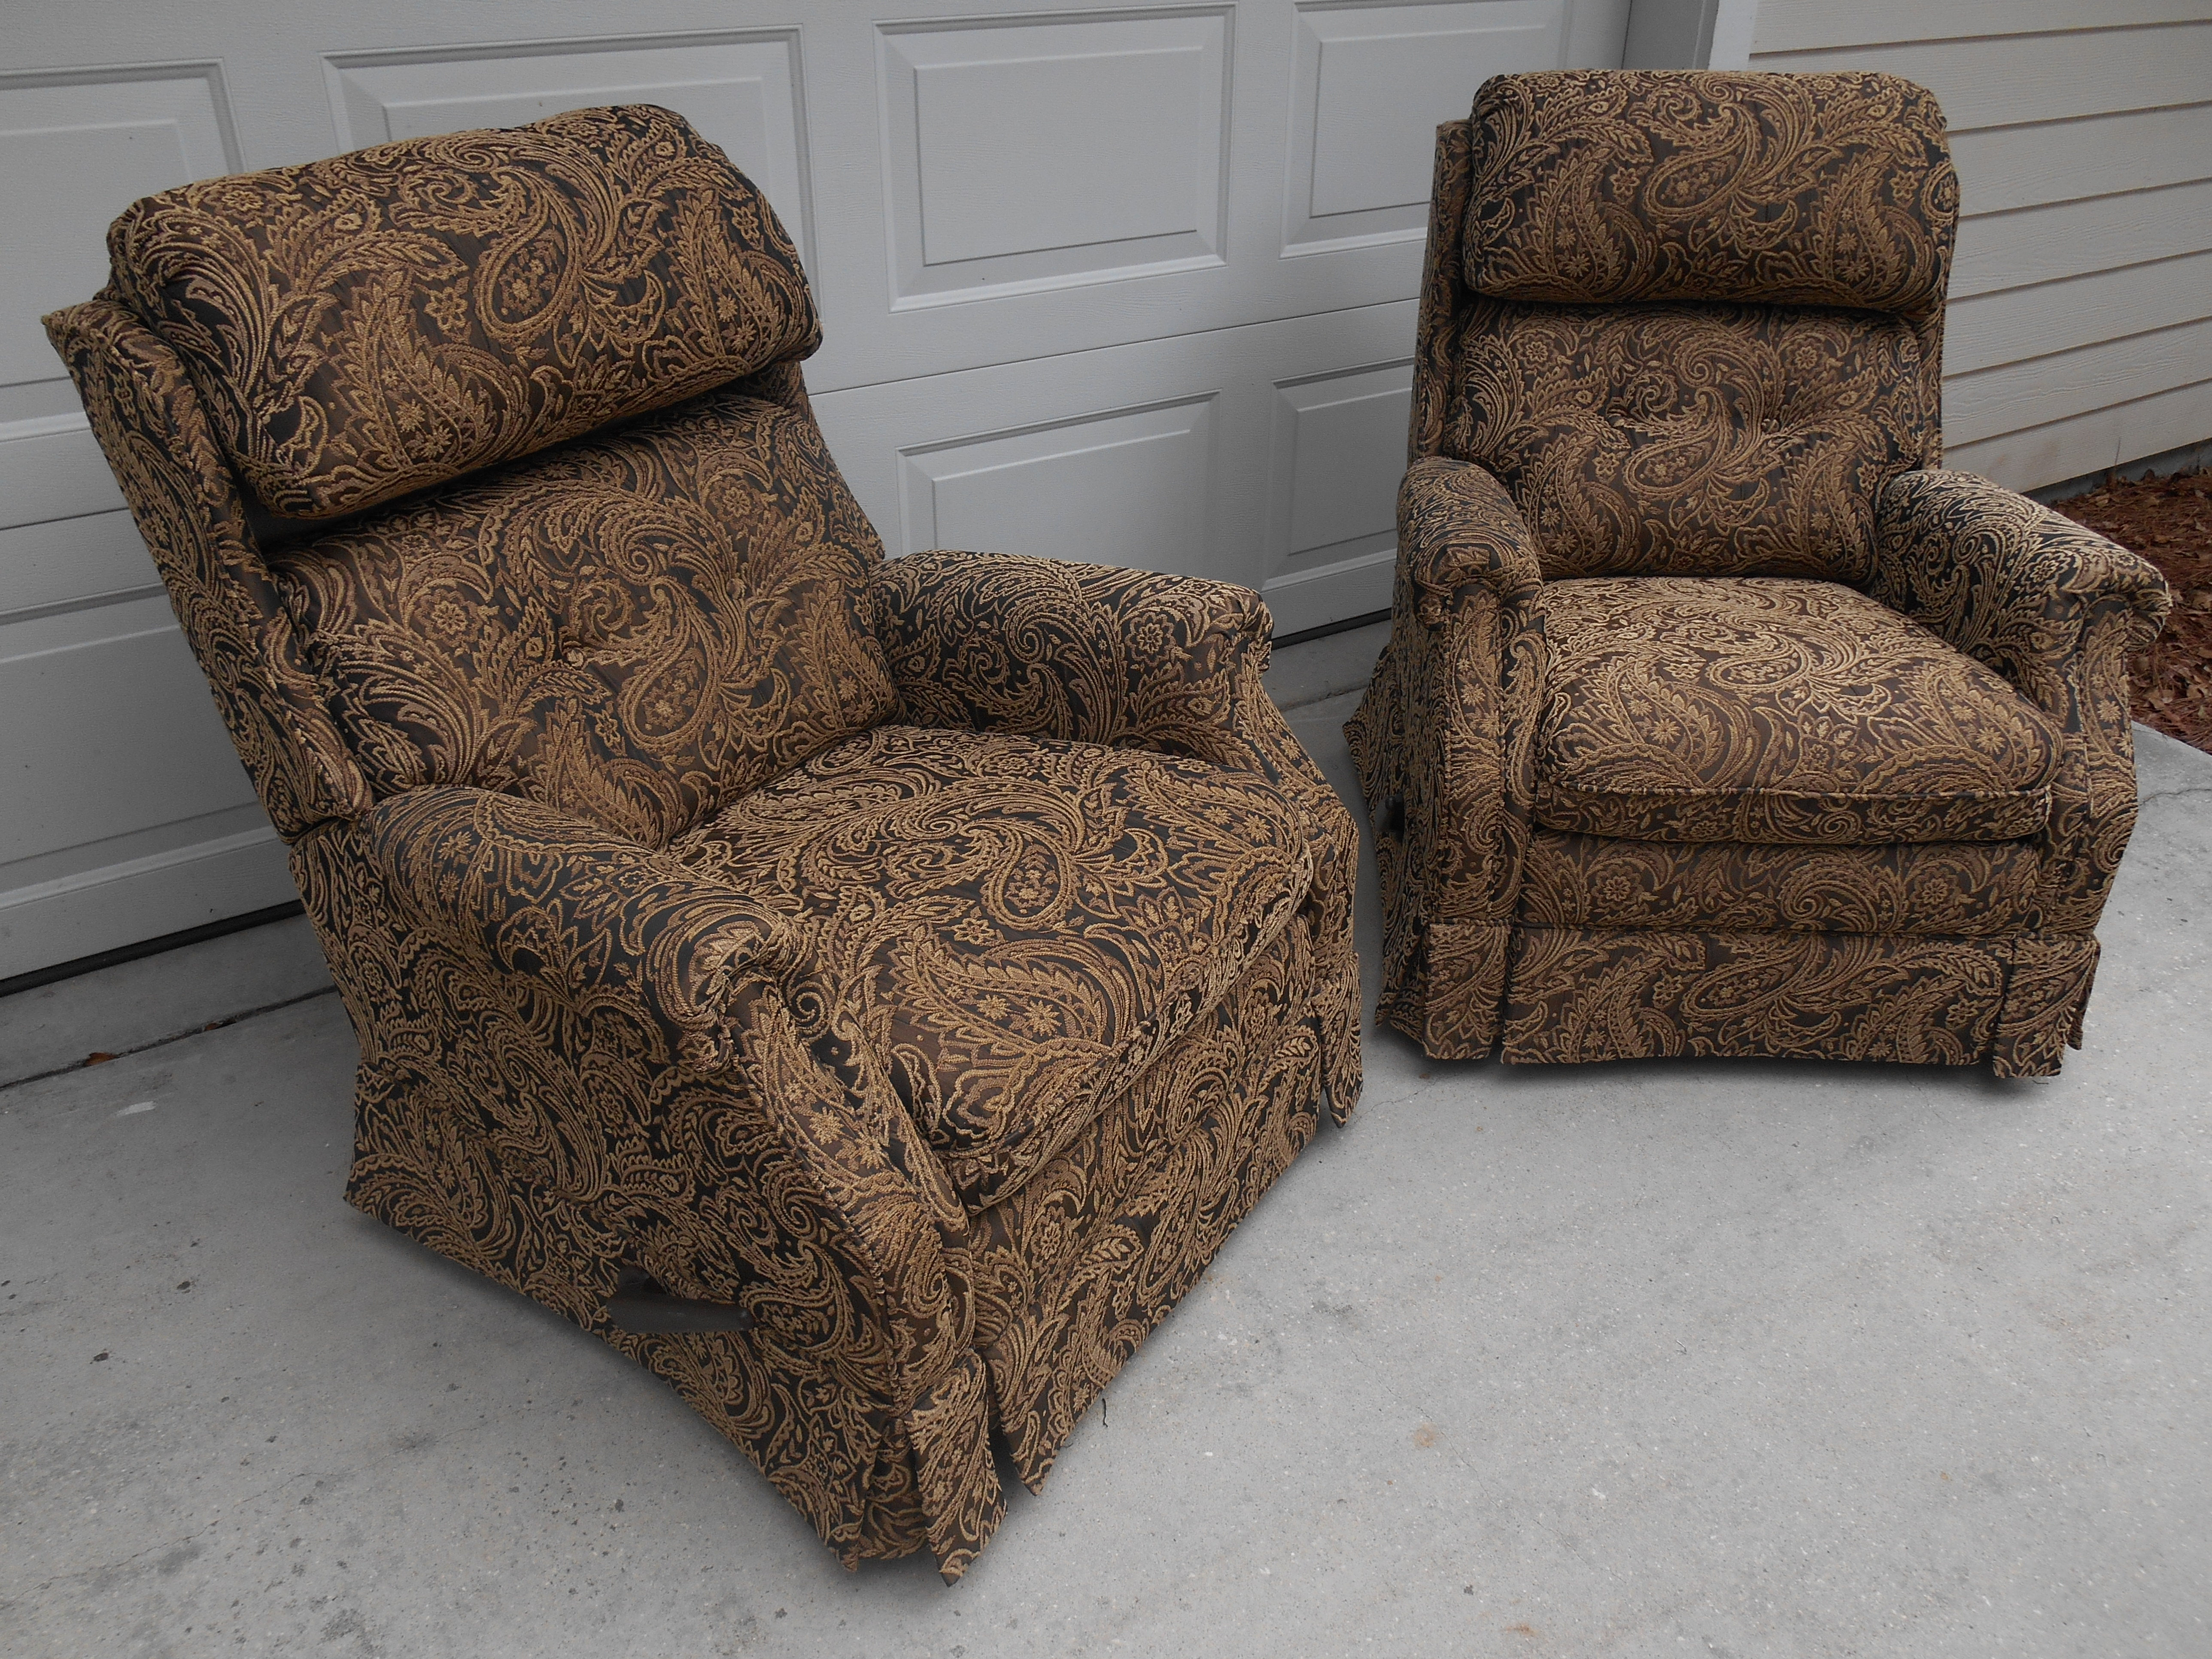 REVIEWS FOR LADD UPHOLSTERY DESIGNS & Ladd Upholstery Designs - Gainesville Fl - Home Page islam-shia.org